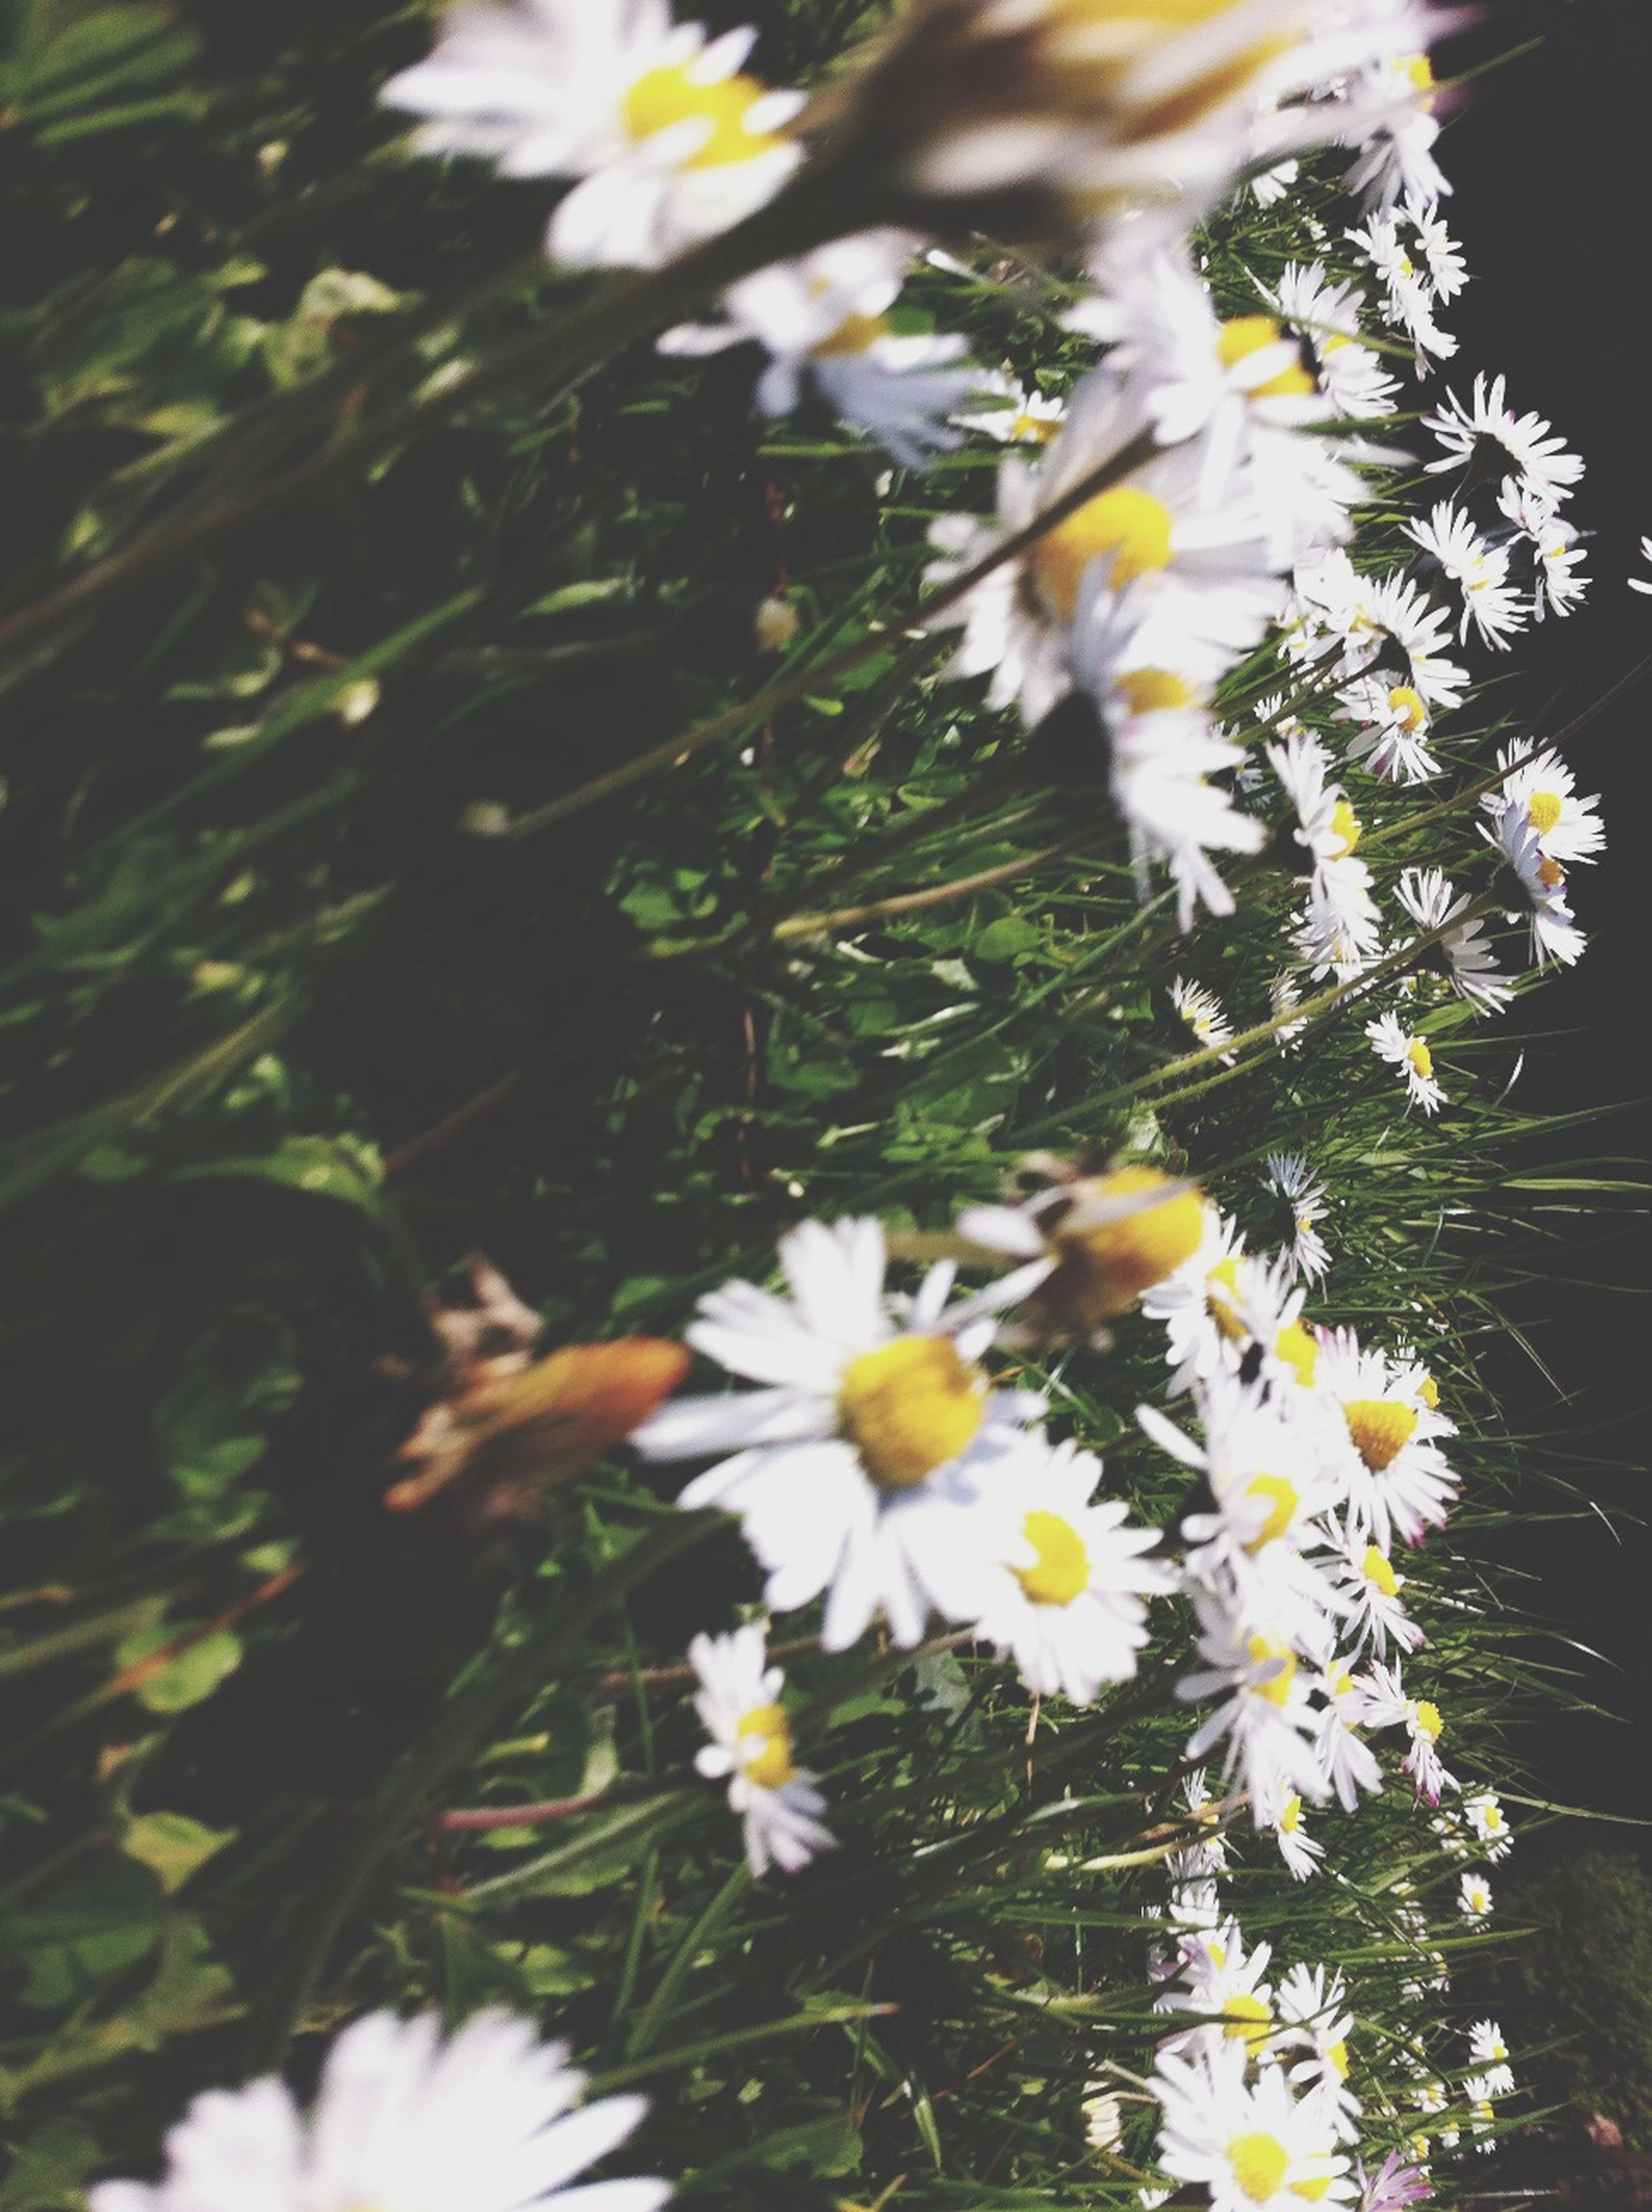 flower, freshness, fragility, petal, growth, white color, blooming, plant, beauty in nature, flower head, daisy, nature, stem, field, focus on foreground, in bloom, close-up, pollen, wildflower, outdoors